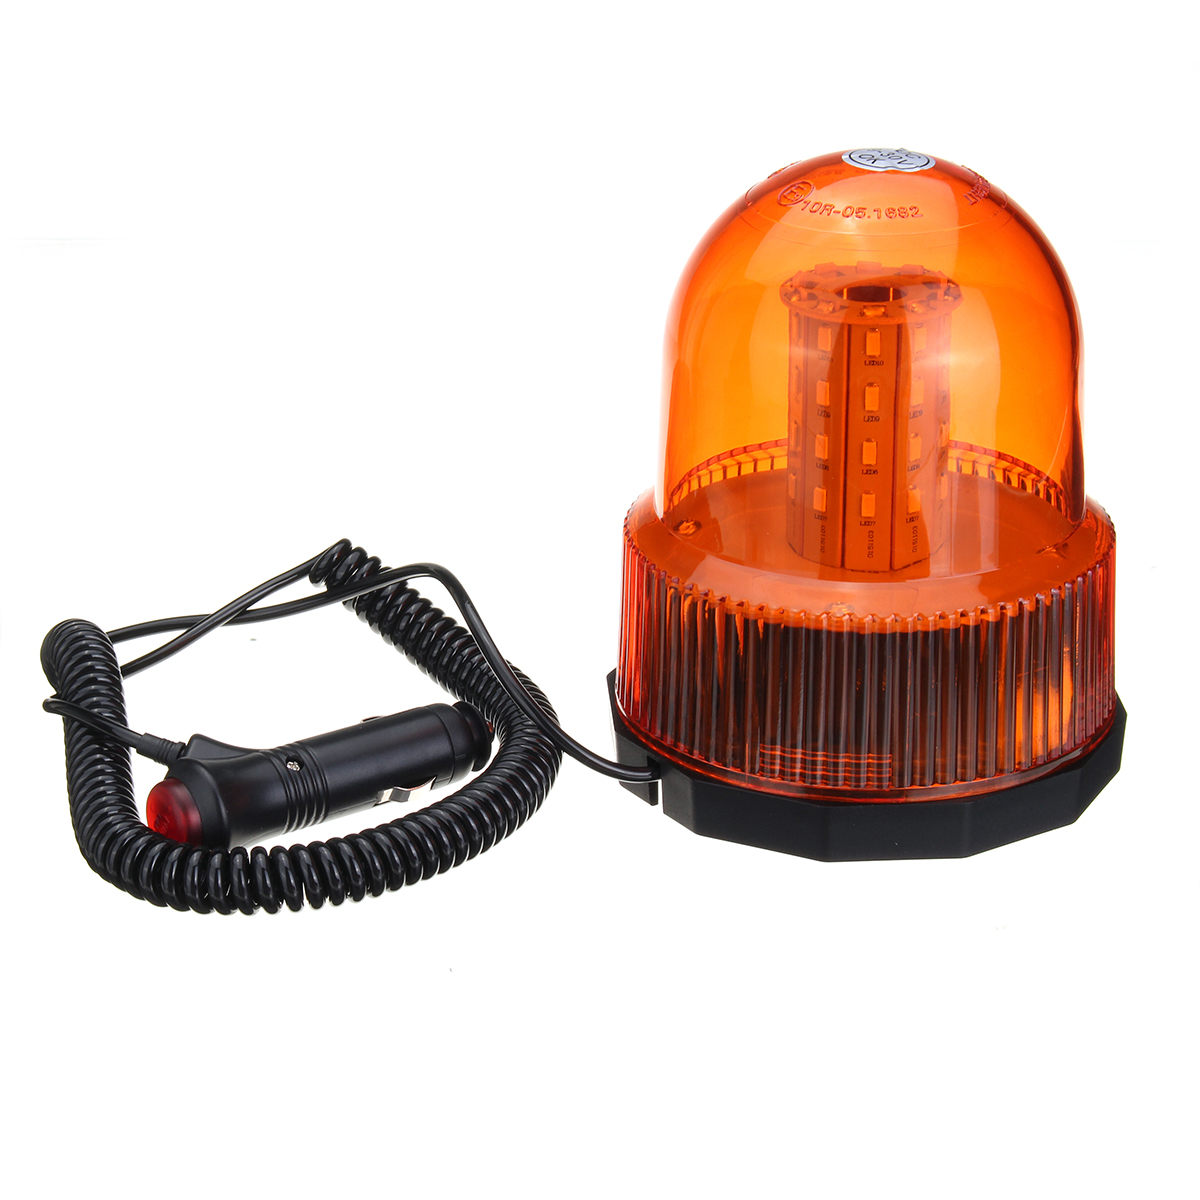 12-24V 40 LED Magnetic Mount Rotating Flashing Amber Dome Beacon Recovery Warning Light Roadway Safety Traffic Light